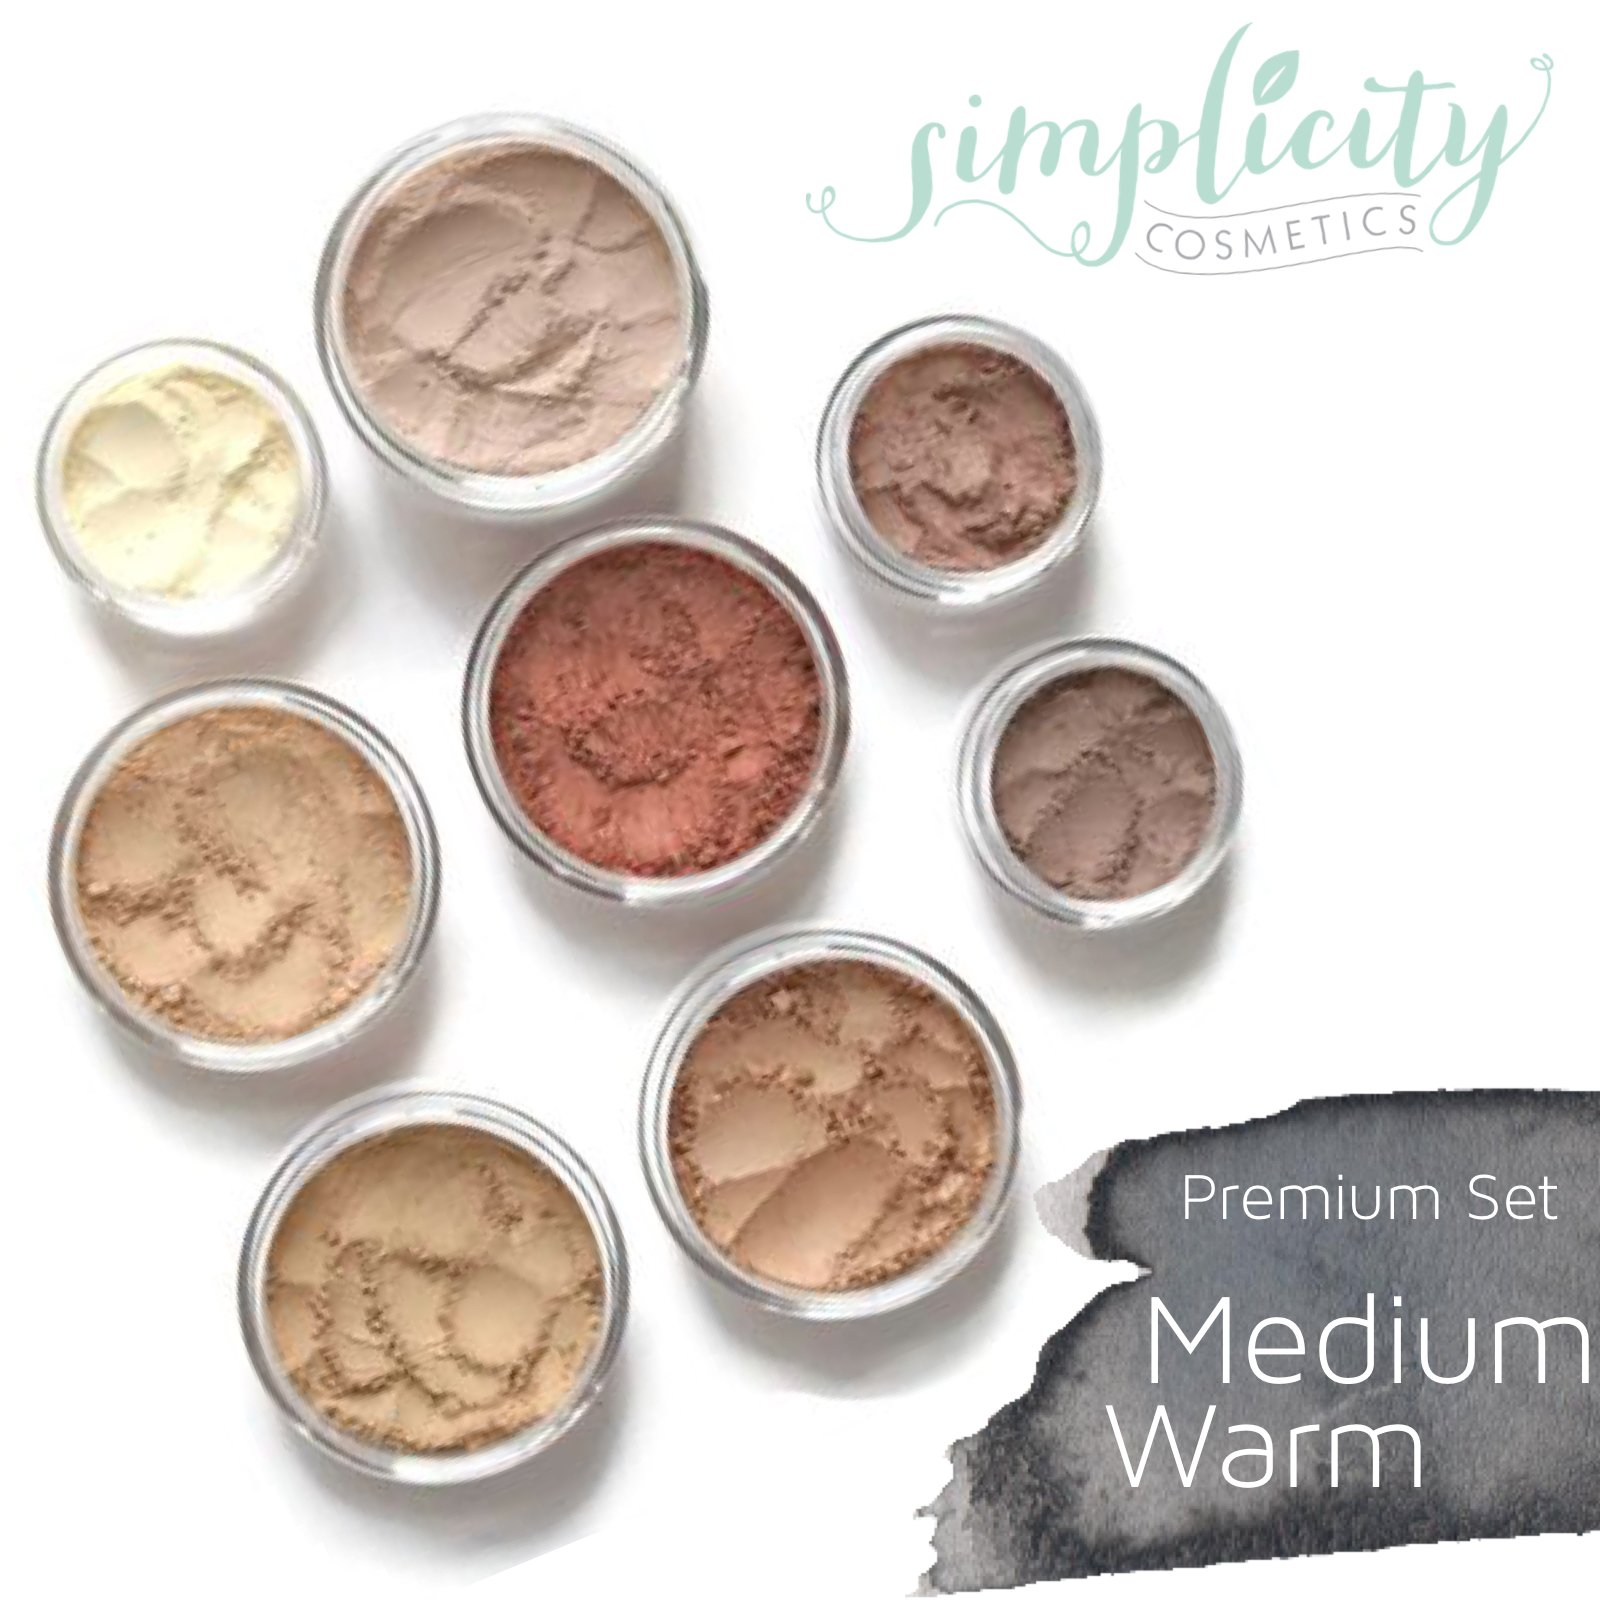 Mineral Makeup Premium Set - Medium Warm | Blush | Foundation | Sheer Powder | Eyeshadow | Bronzer | Under Eye Concealer | Starter Set